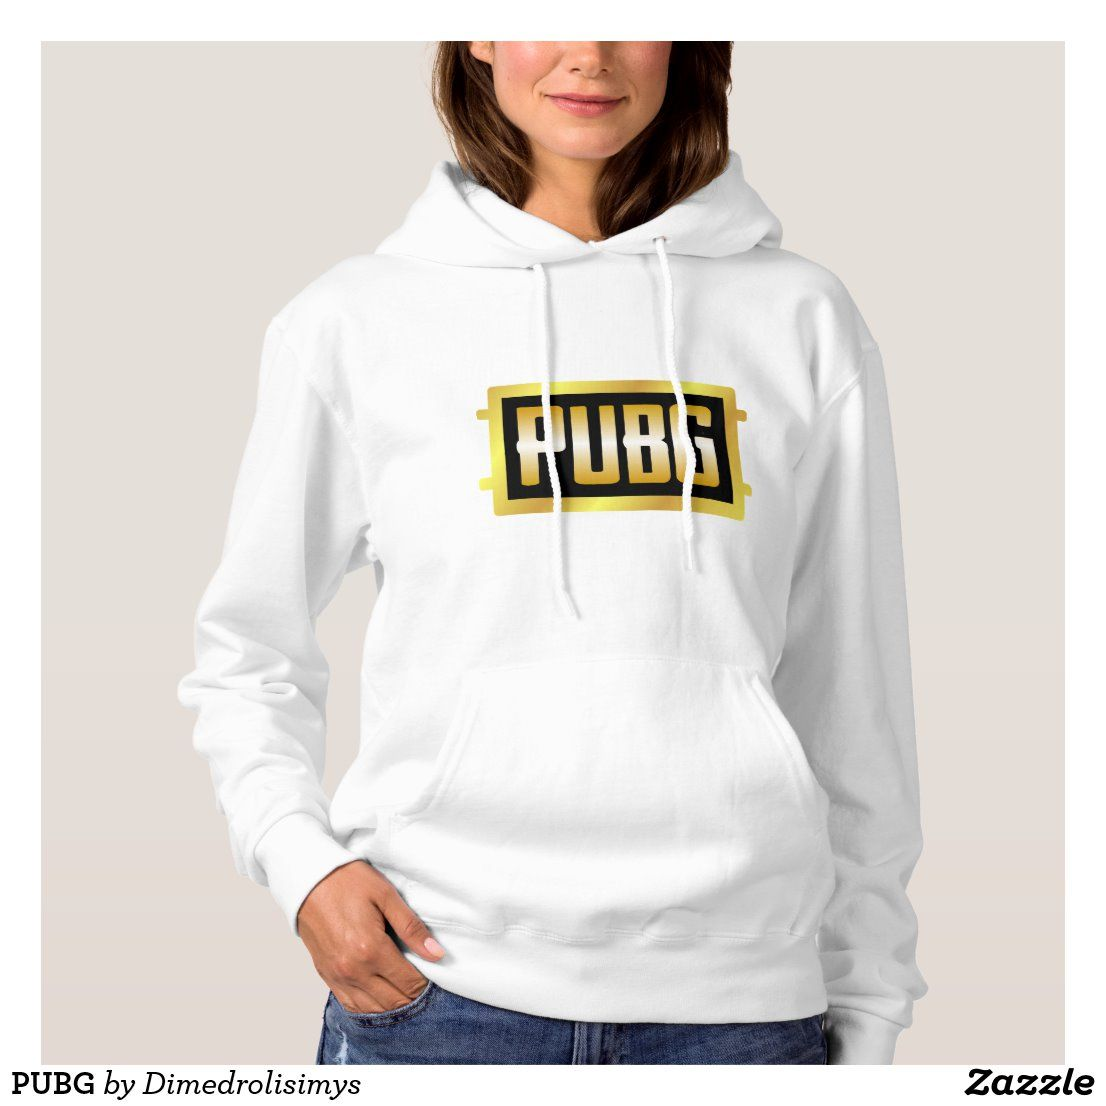 Pubg hoodie investing forex affiliate program paypal login